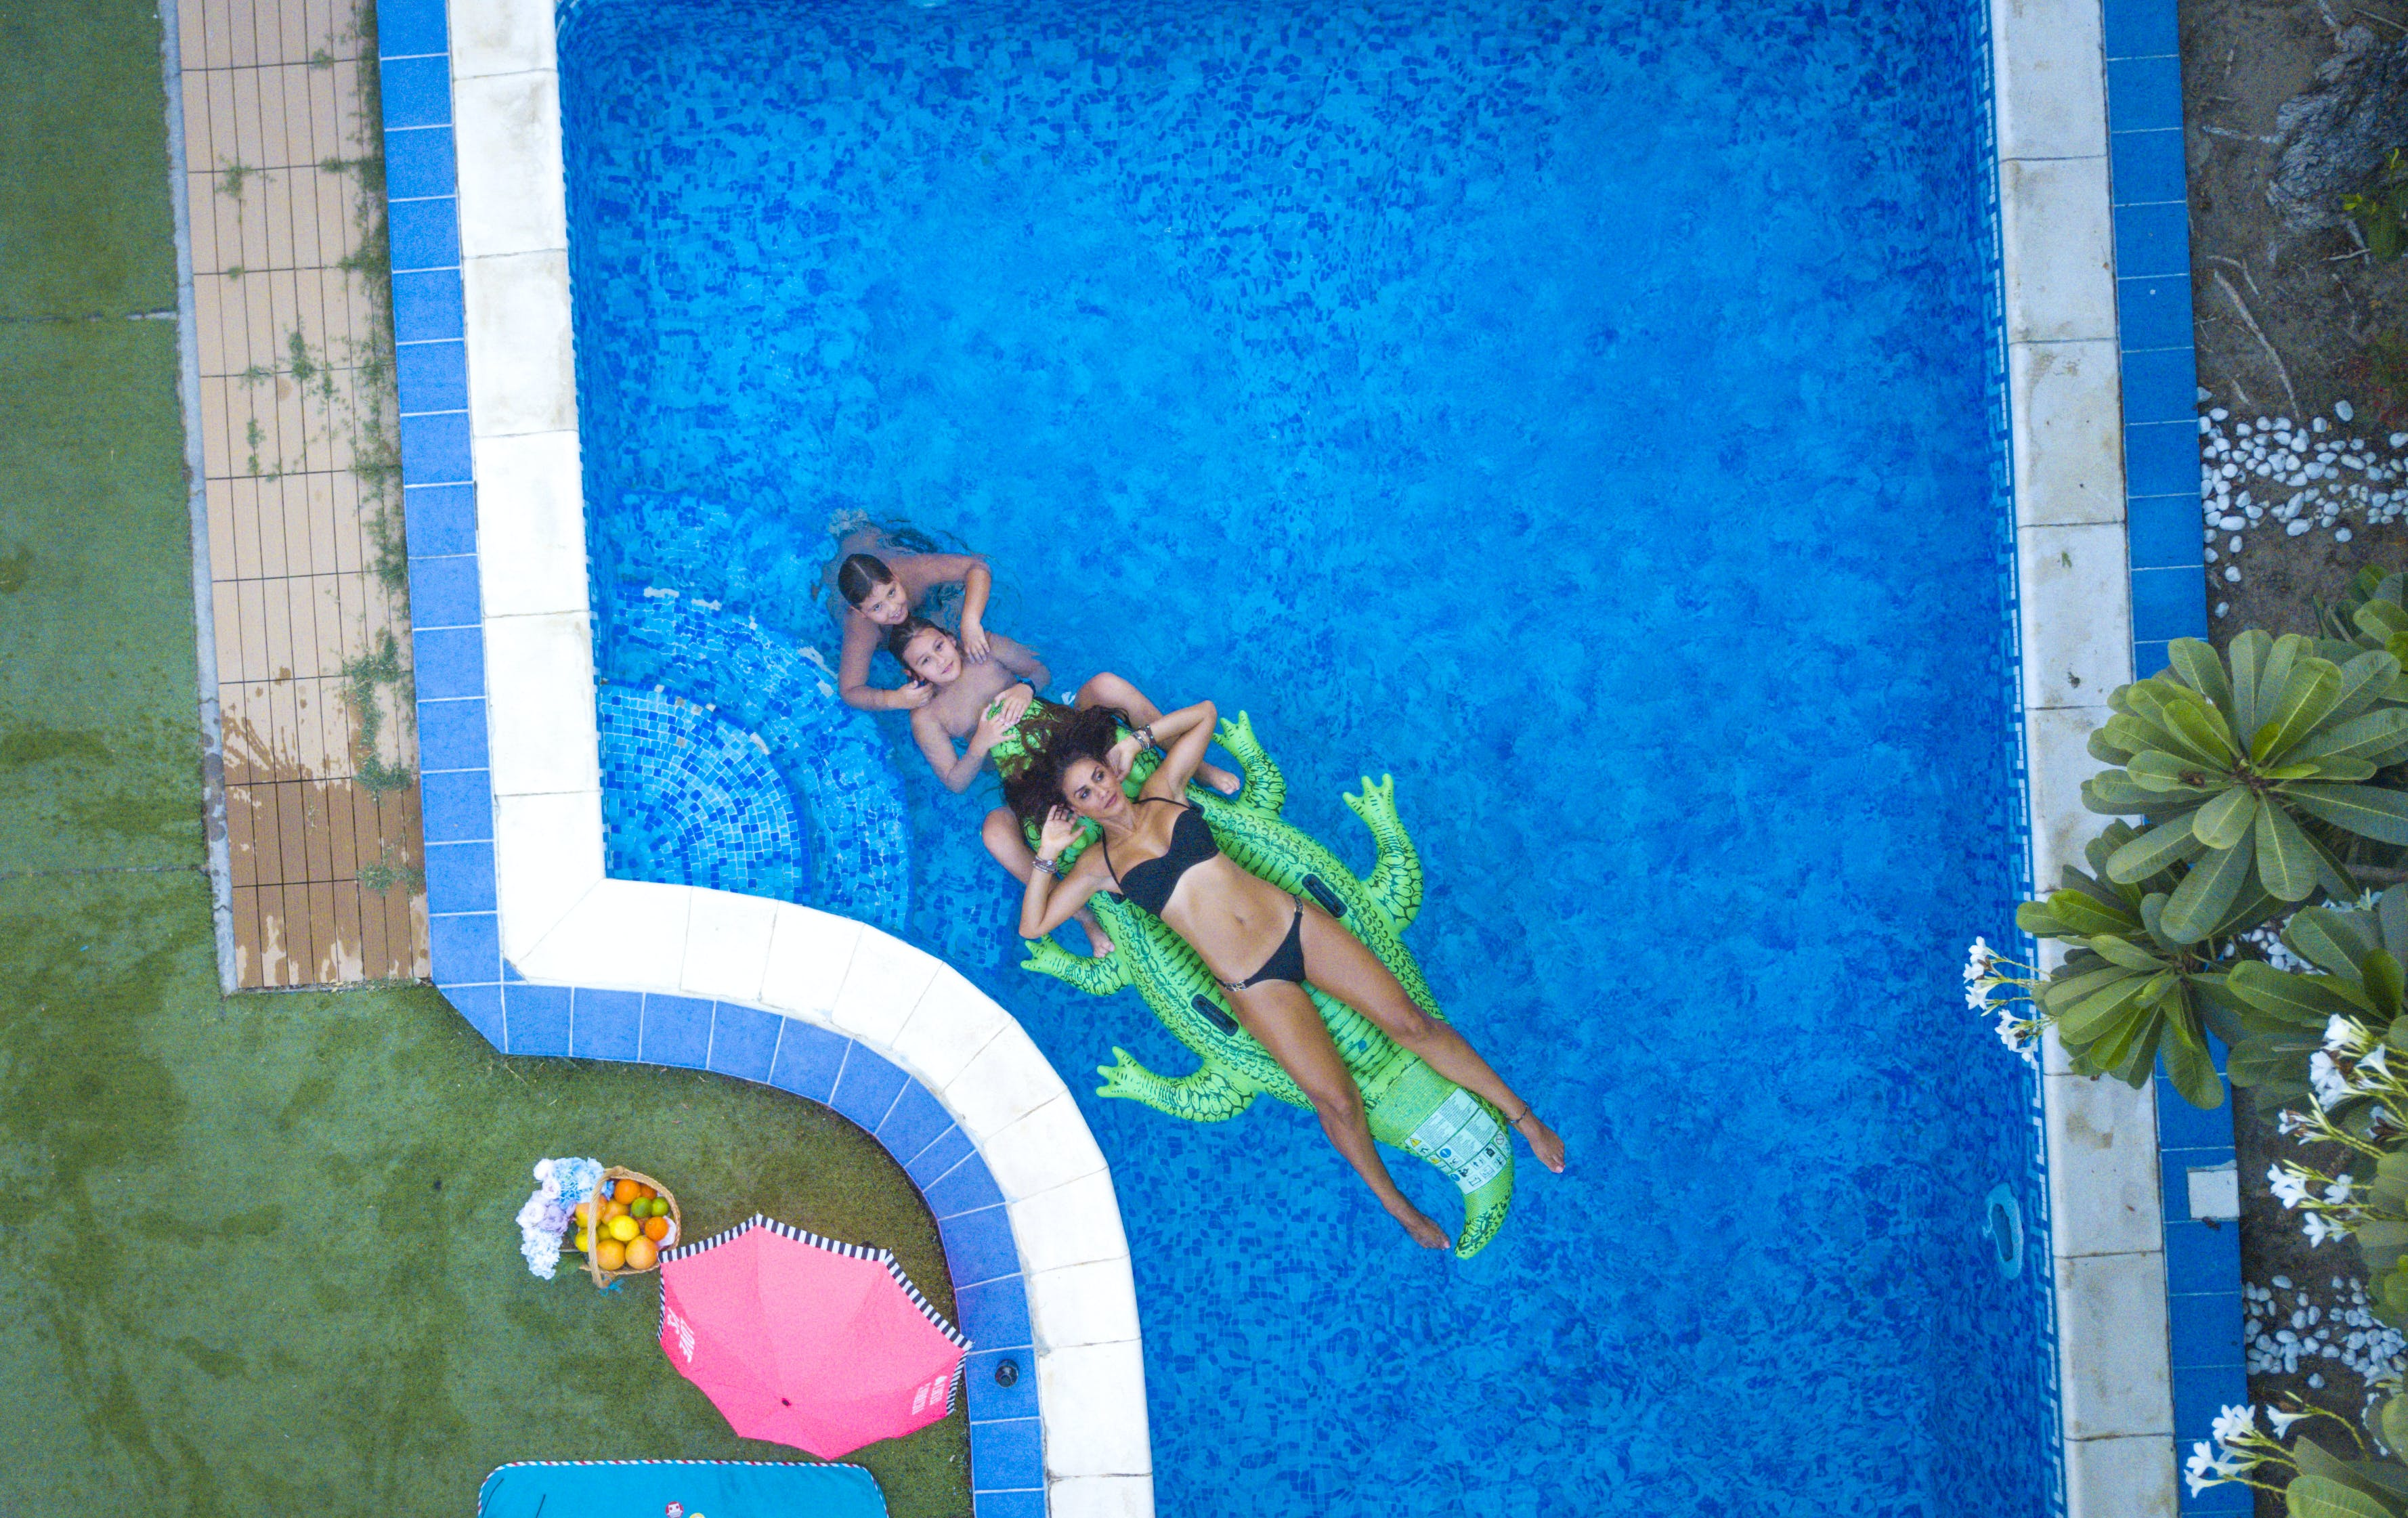 Aerial Photography Of Three People Swimming